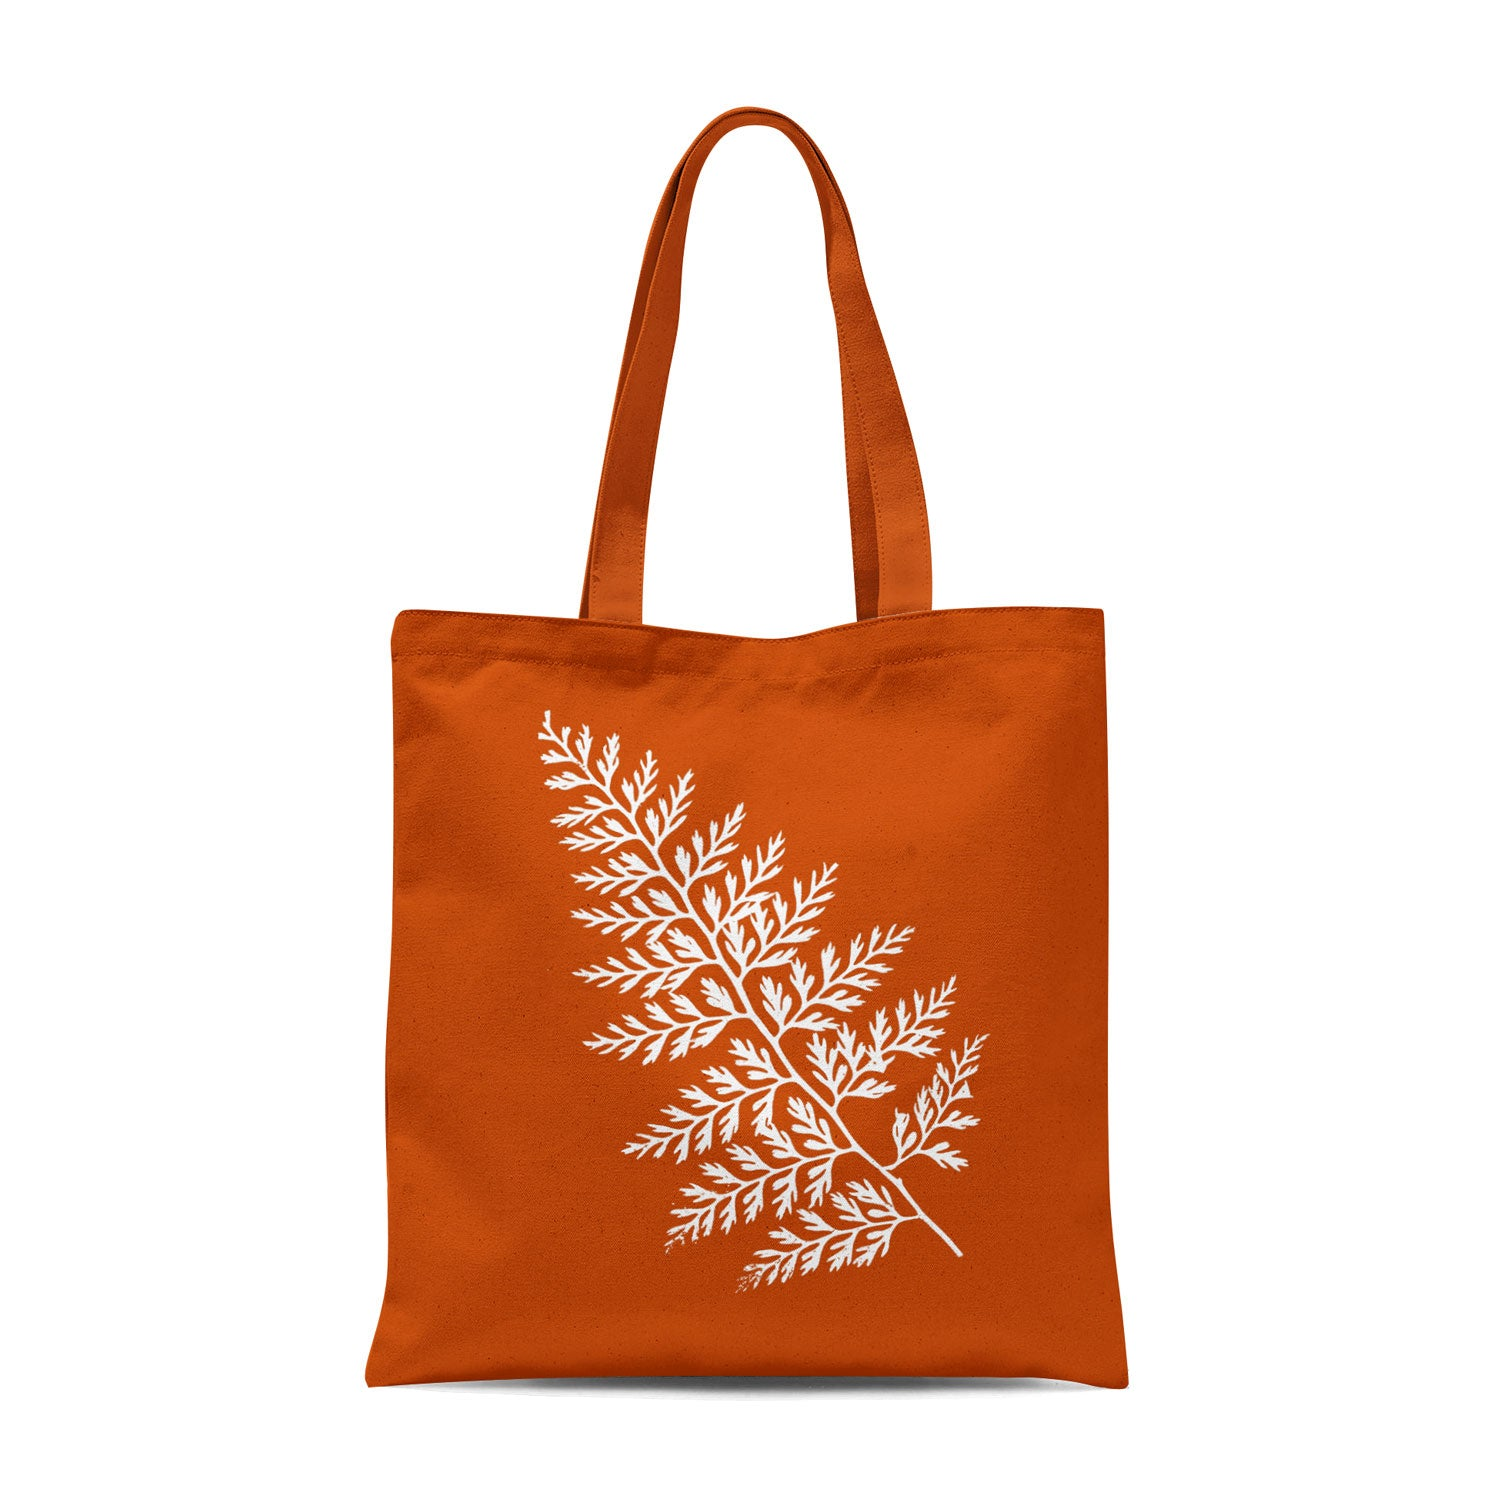 orange tote bag with white leaf design